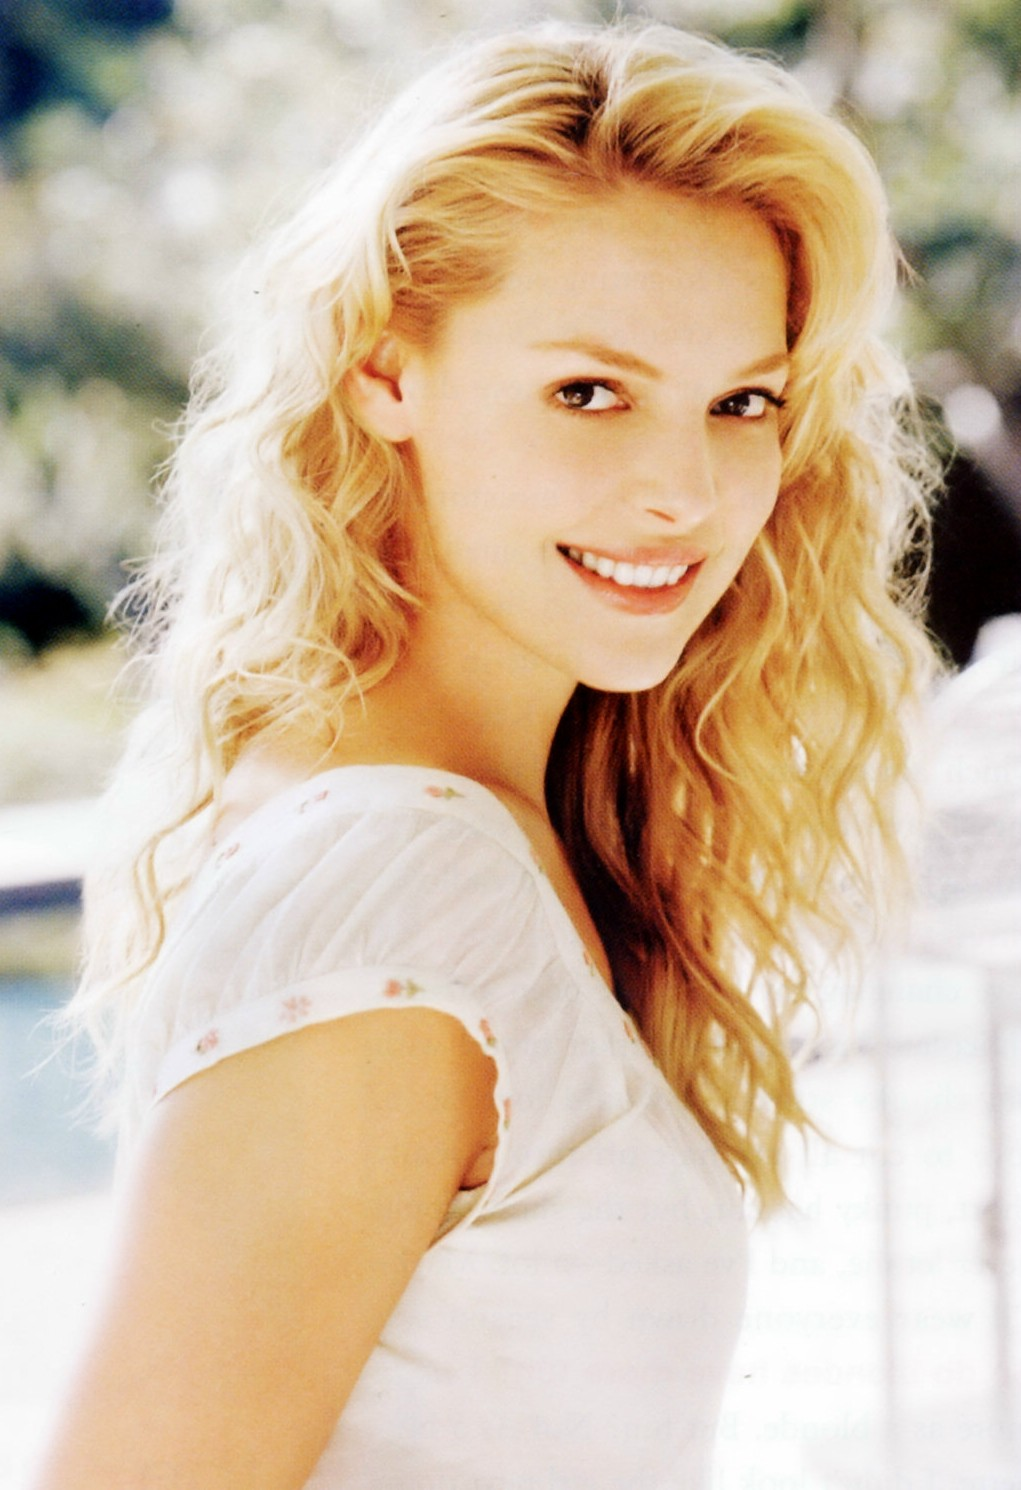 http://sweetcelebrity.files.wordpress.com/2008/05/katherine-heigl_org-modeling002-002.jpg